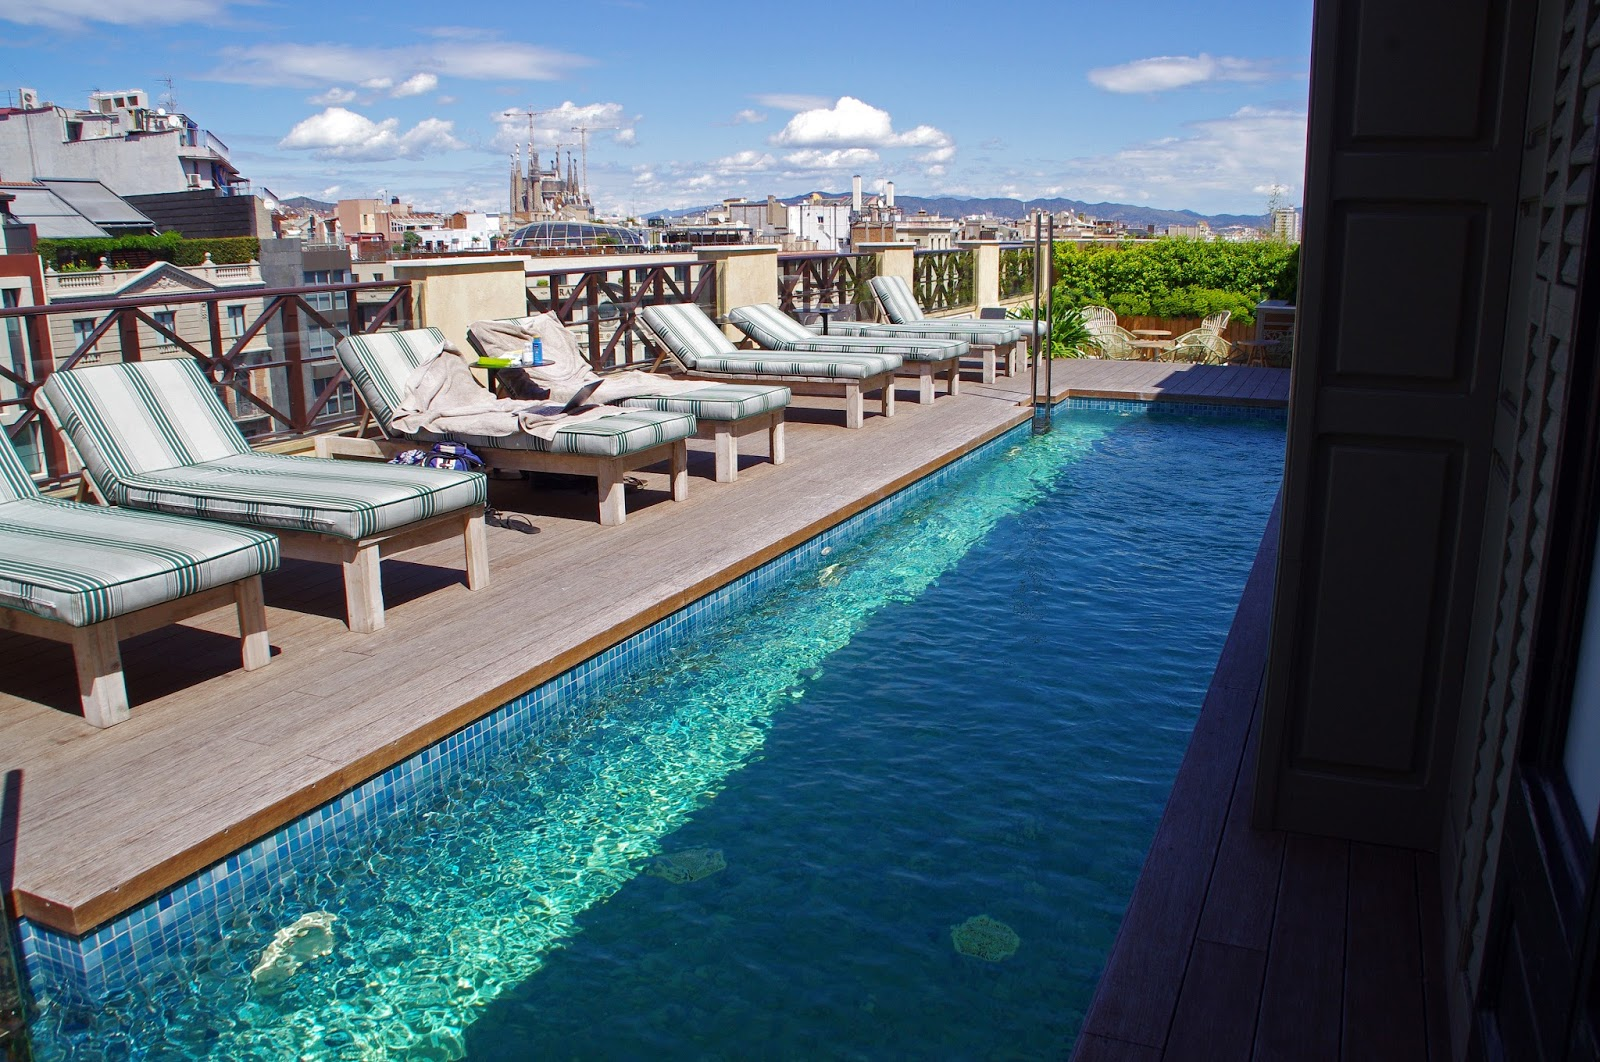 Cotton House Hotel Barcelona Rooftop Pool Area